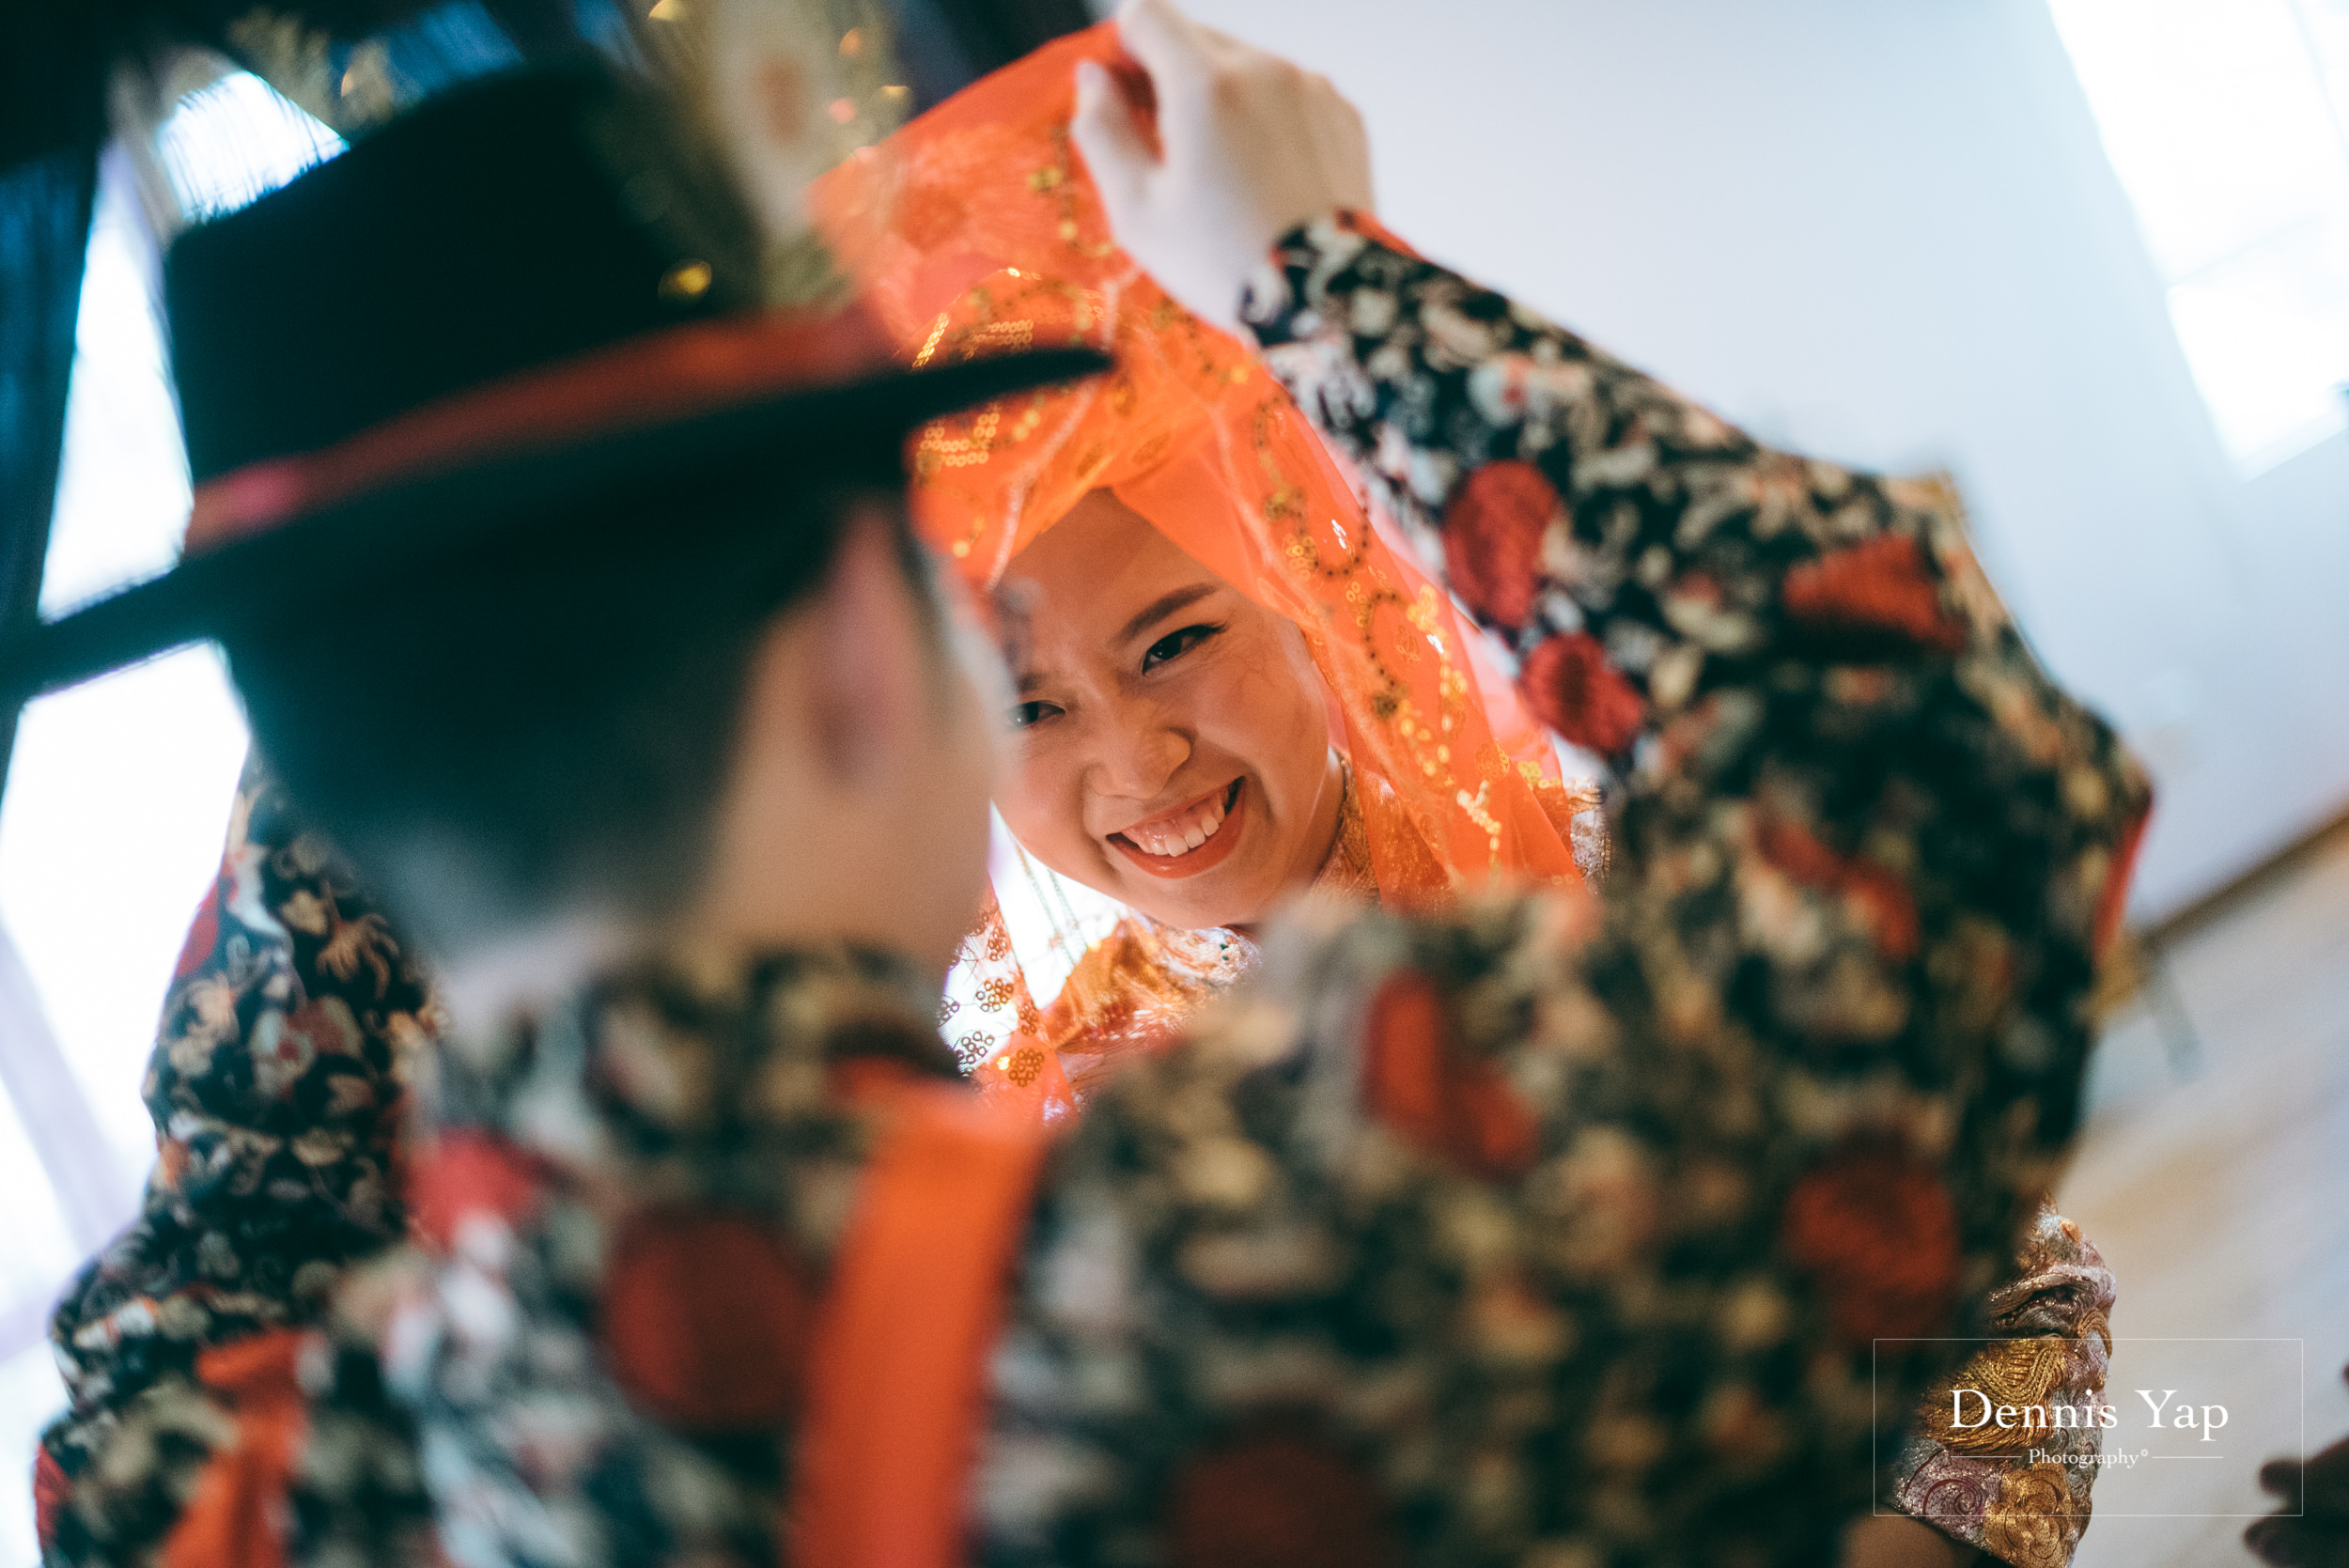 bobby fiona dennis yap photography malaysia wedding photographer chinese traditional-75.jpg